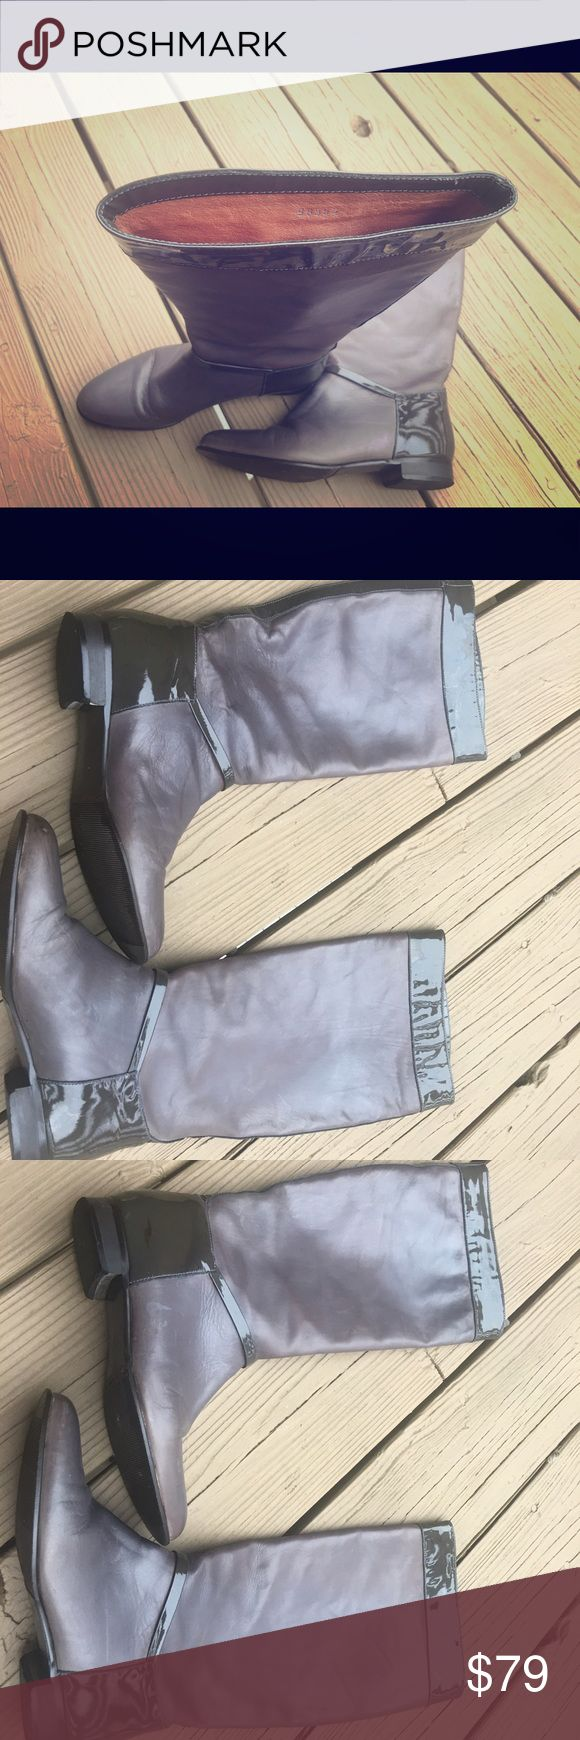 J.Crew Collection Italian Grey Leather Boots Only wore twice. Excellent condition. Size 6.5. J.Crew Collection. Made in Italy. Pull-on boots. All leather, leather upper and lining. Grey leather with grey patent leather trimming. J. Crew Shoes Heeled Boots